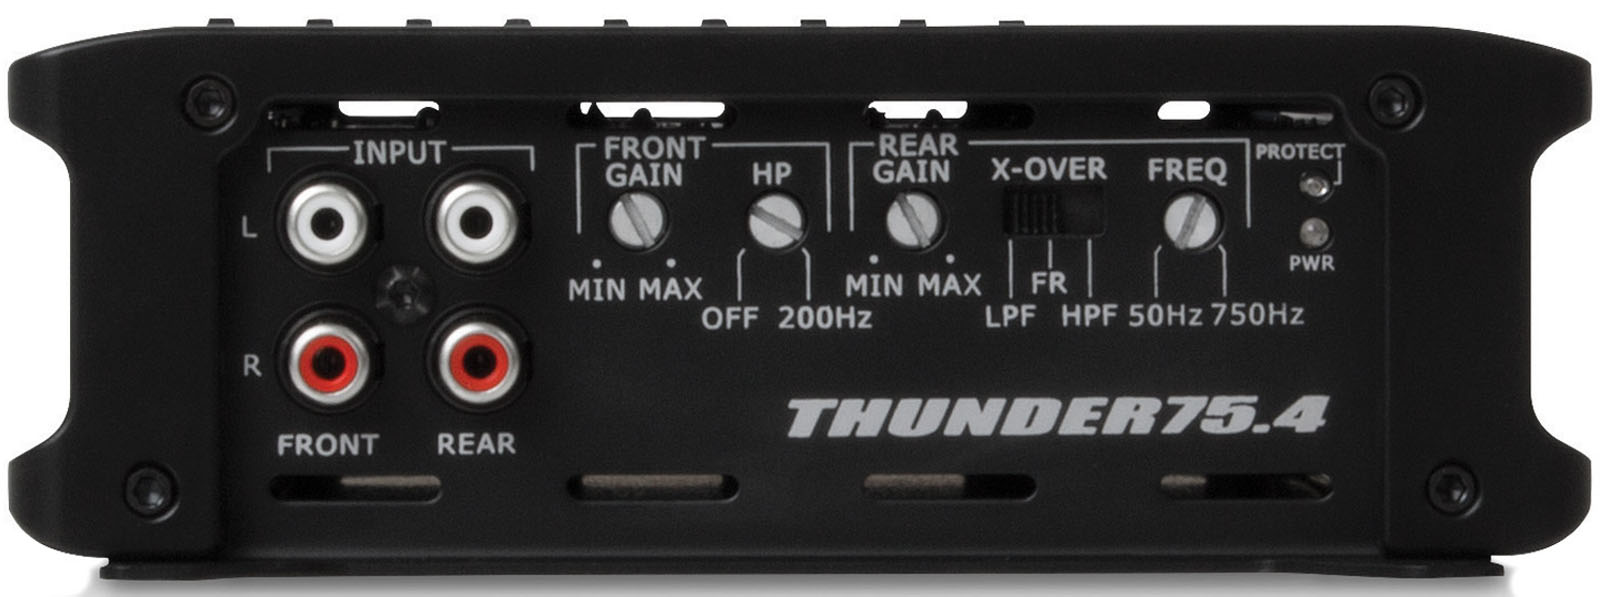 thunder series thunder754 400w rms 4 channel class ab amplifier